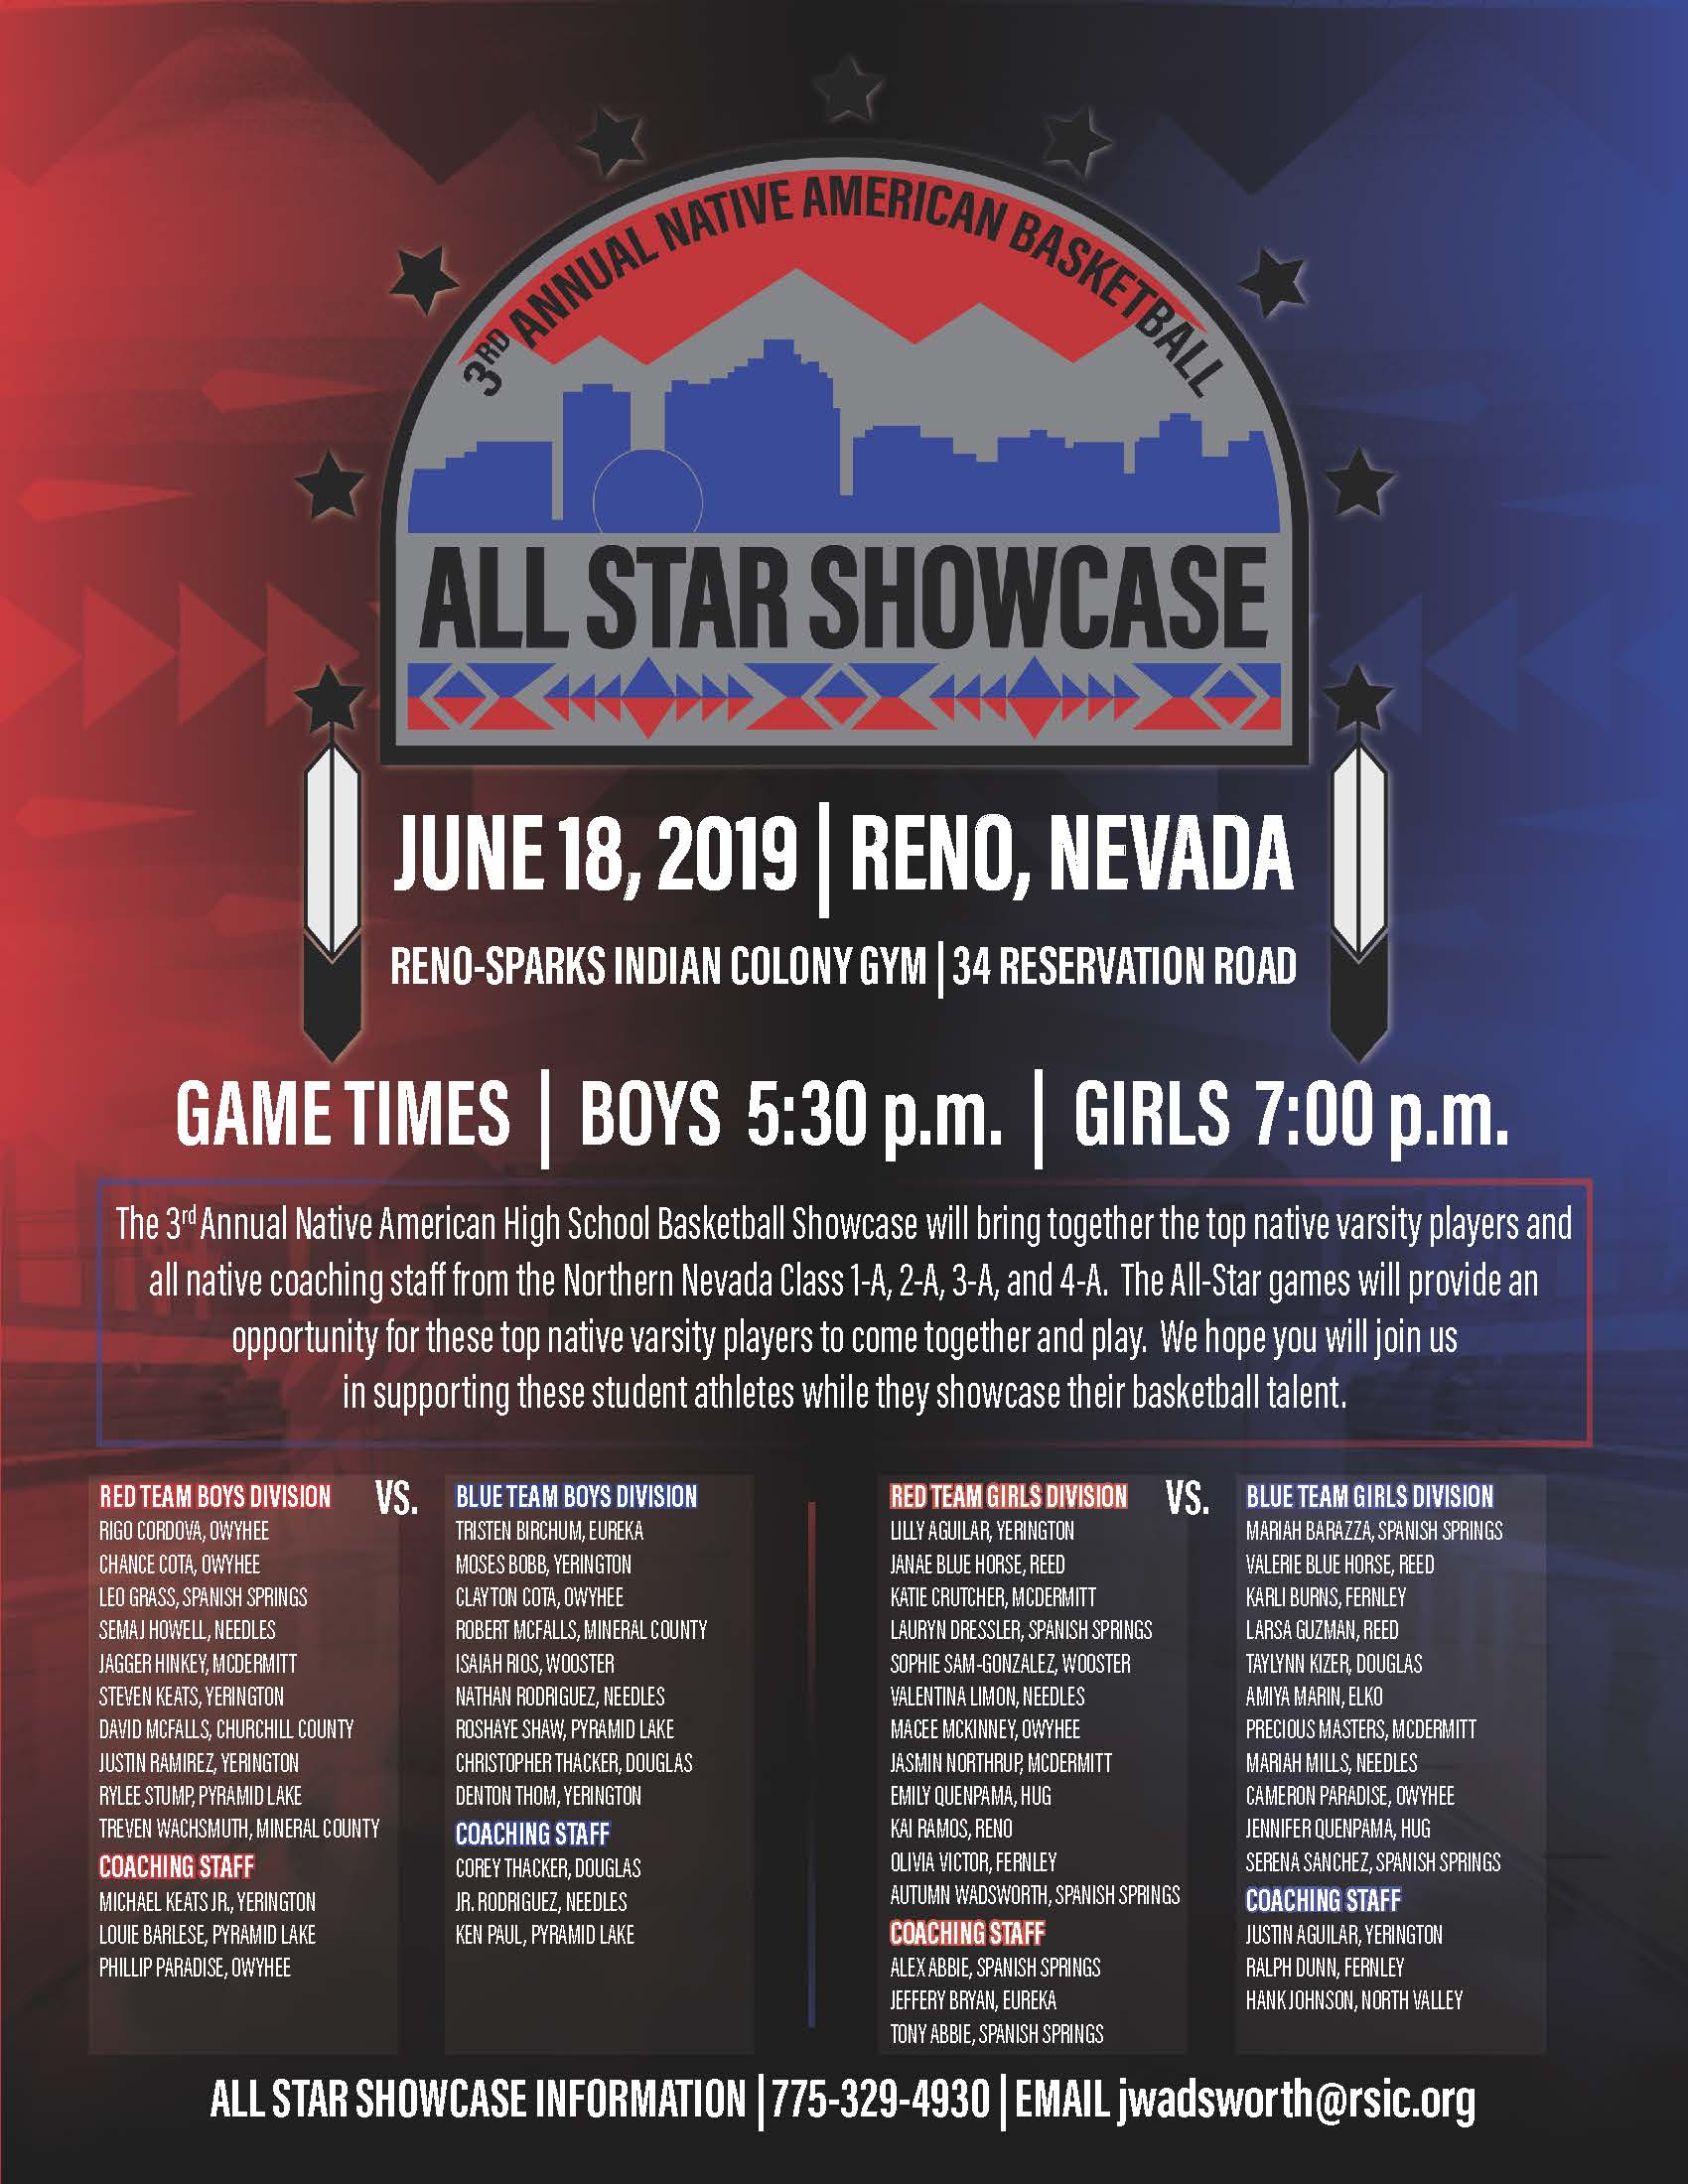 Basketball Showcase Looks Beyond Sports | Reno-Sparks Indian Colony